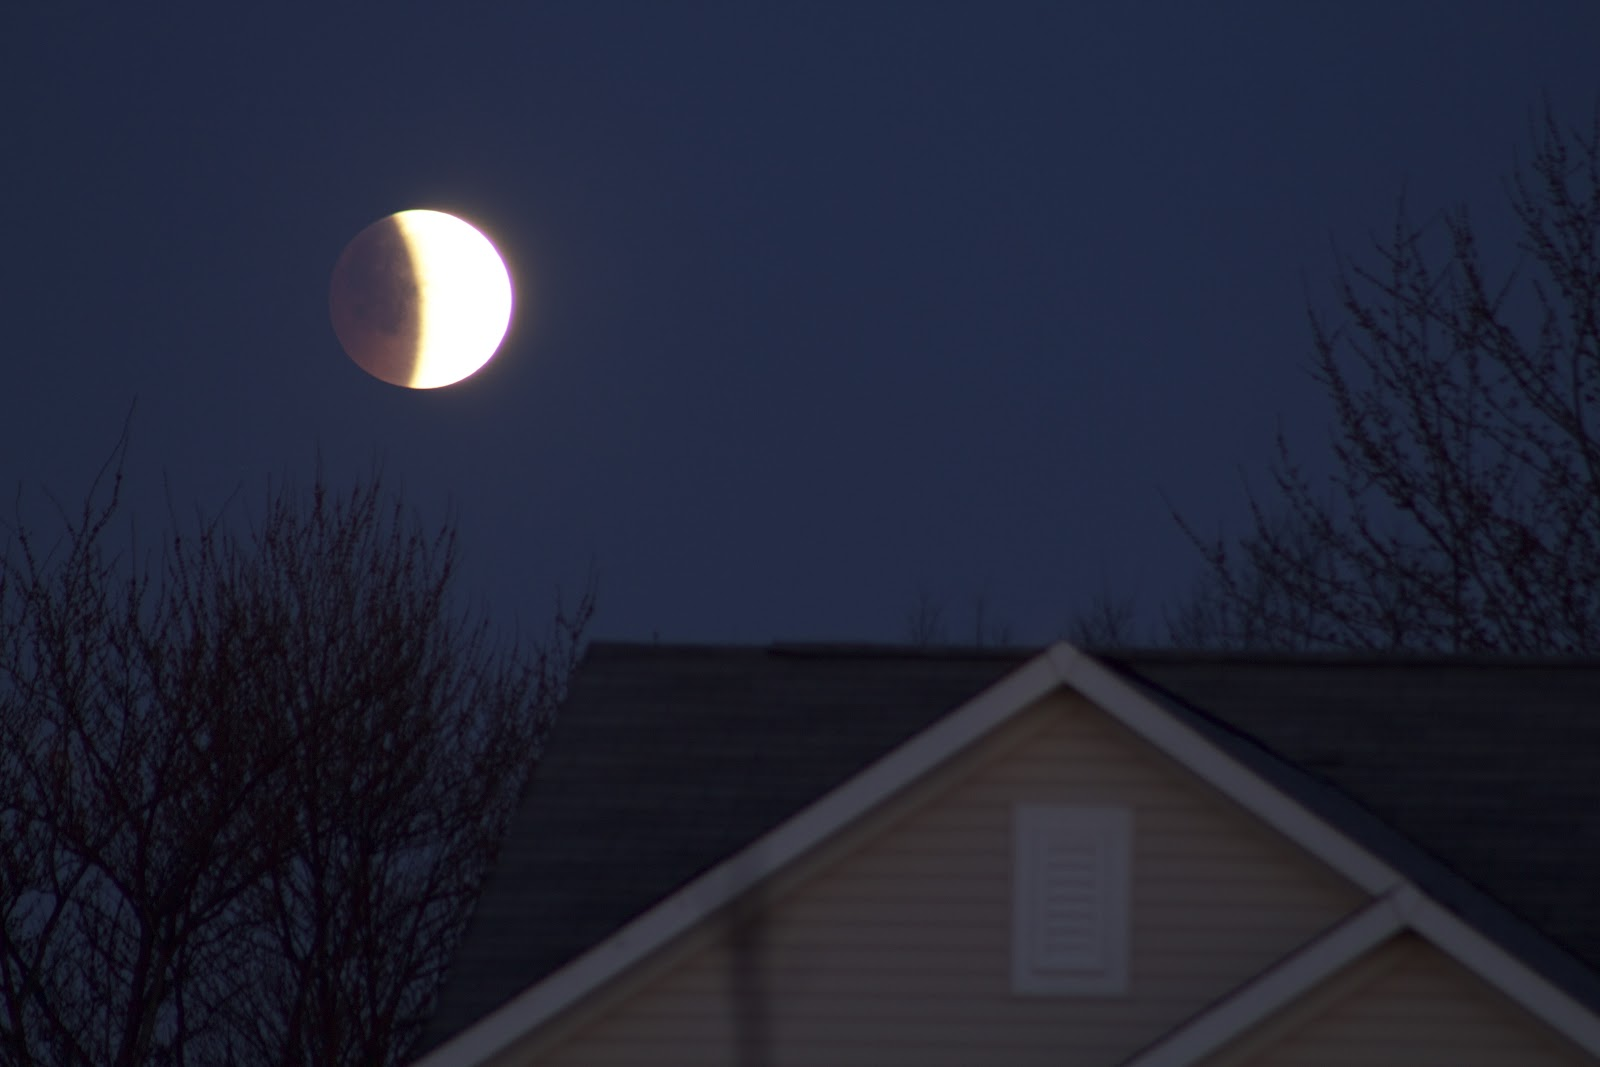 lunar eclipse photo april 4